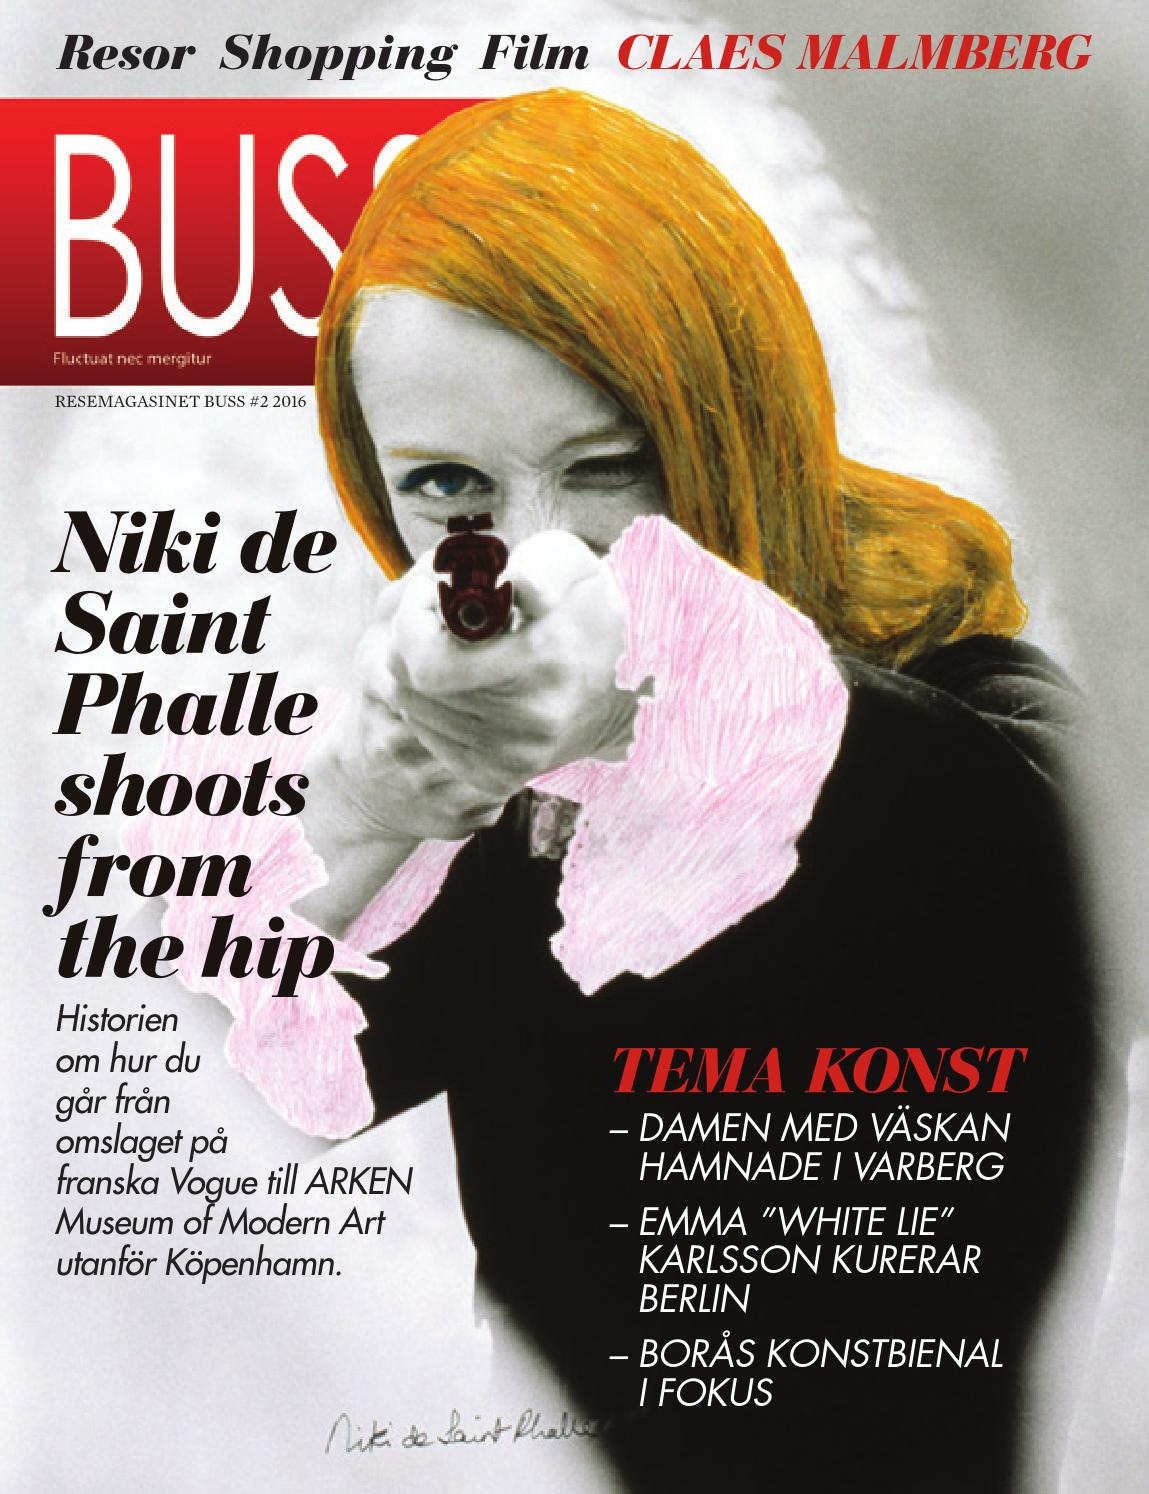 Resemagasinet Buss  2 2016 by resemagasinetbuss - issuu e976a99e9845b